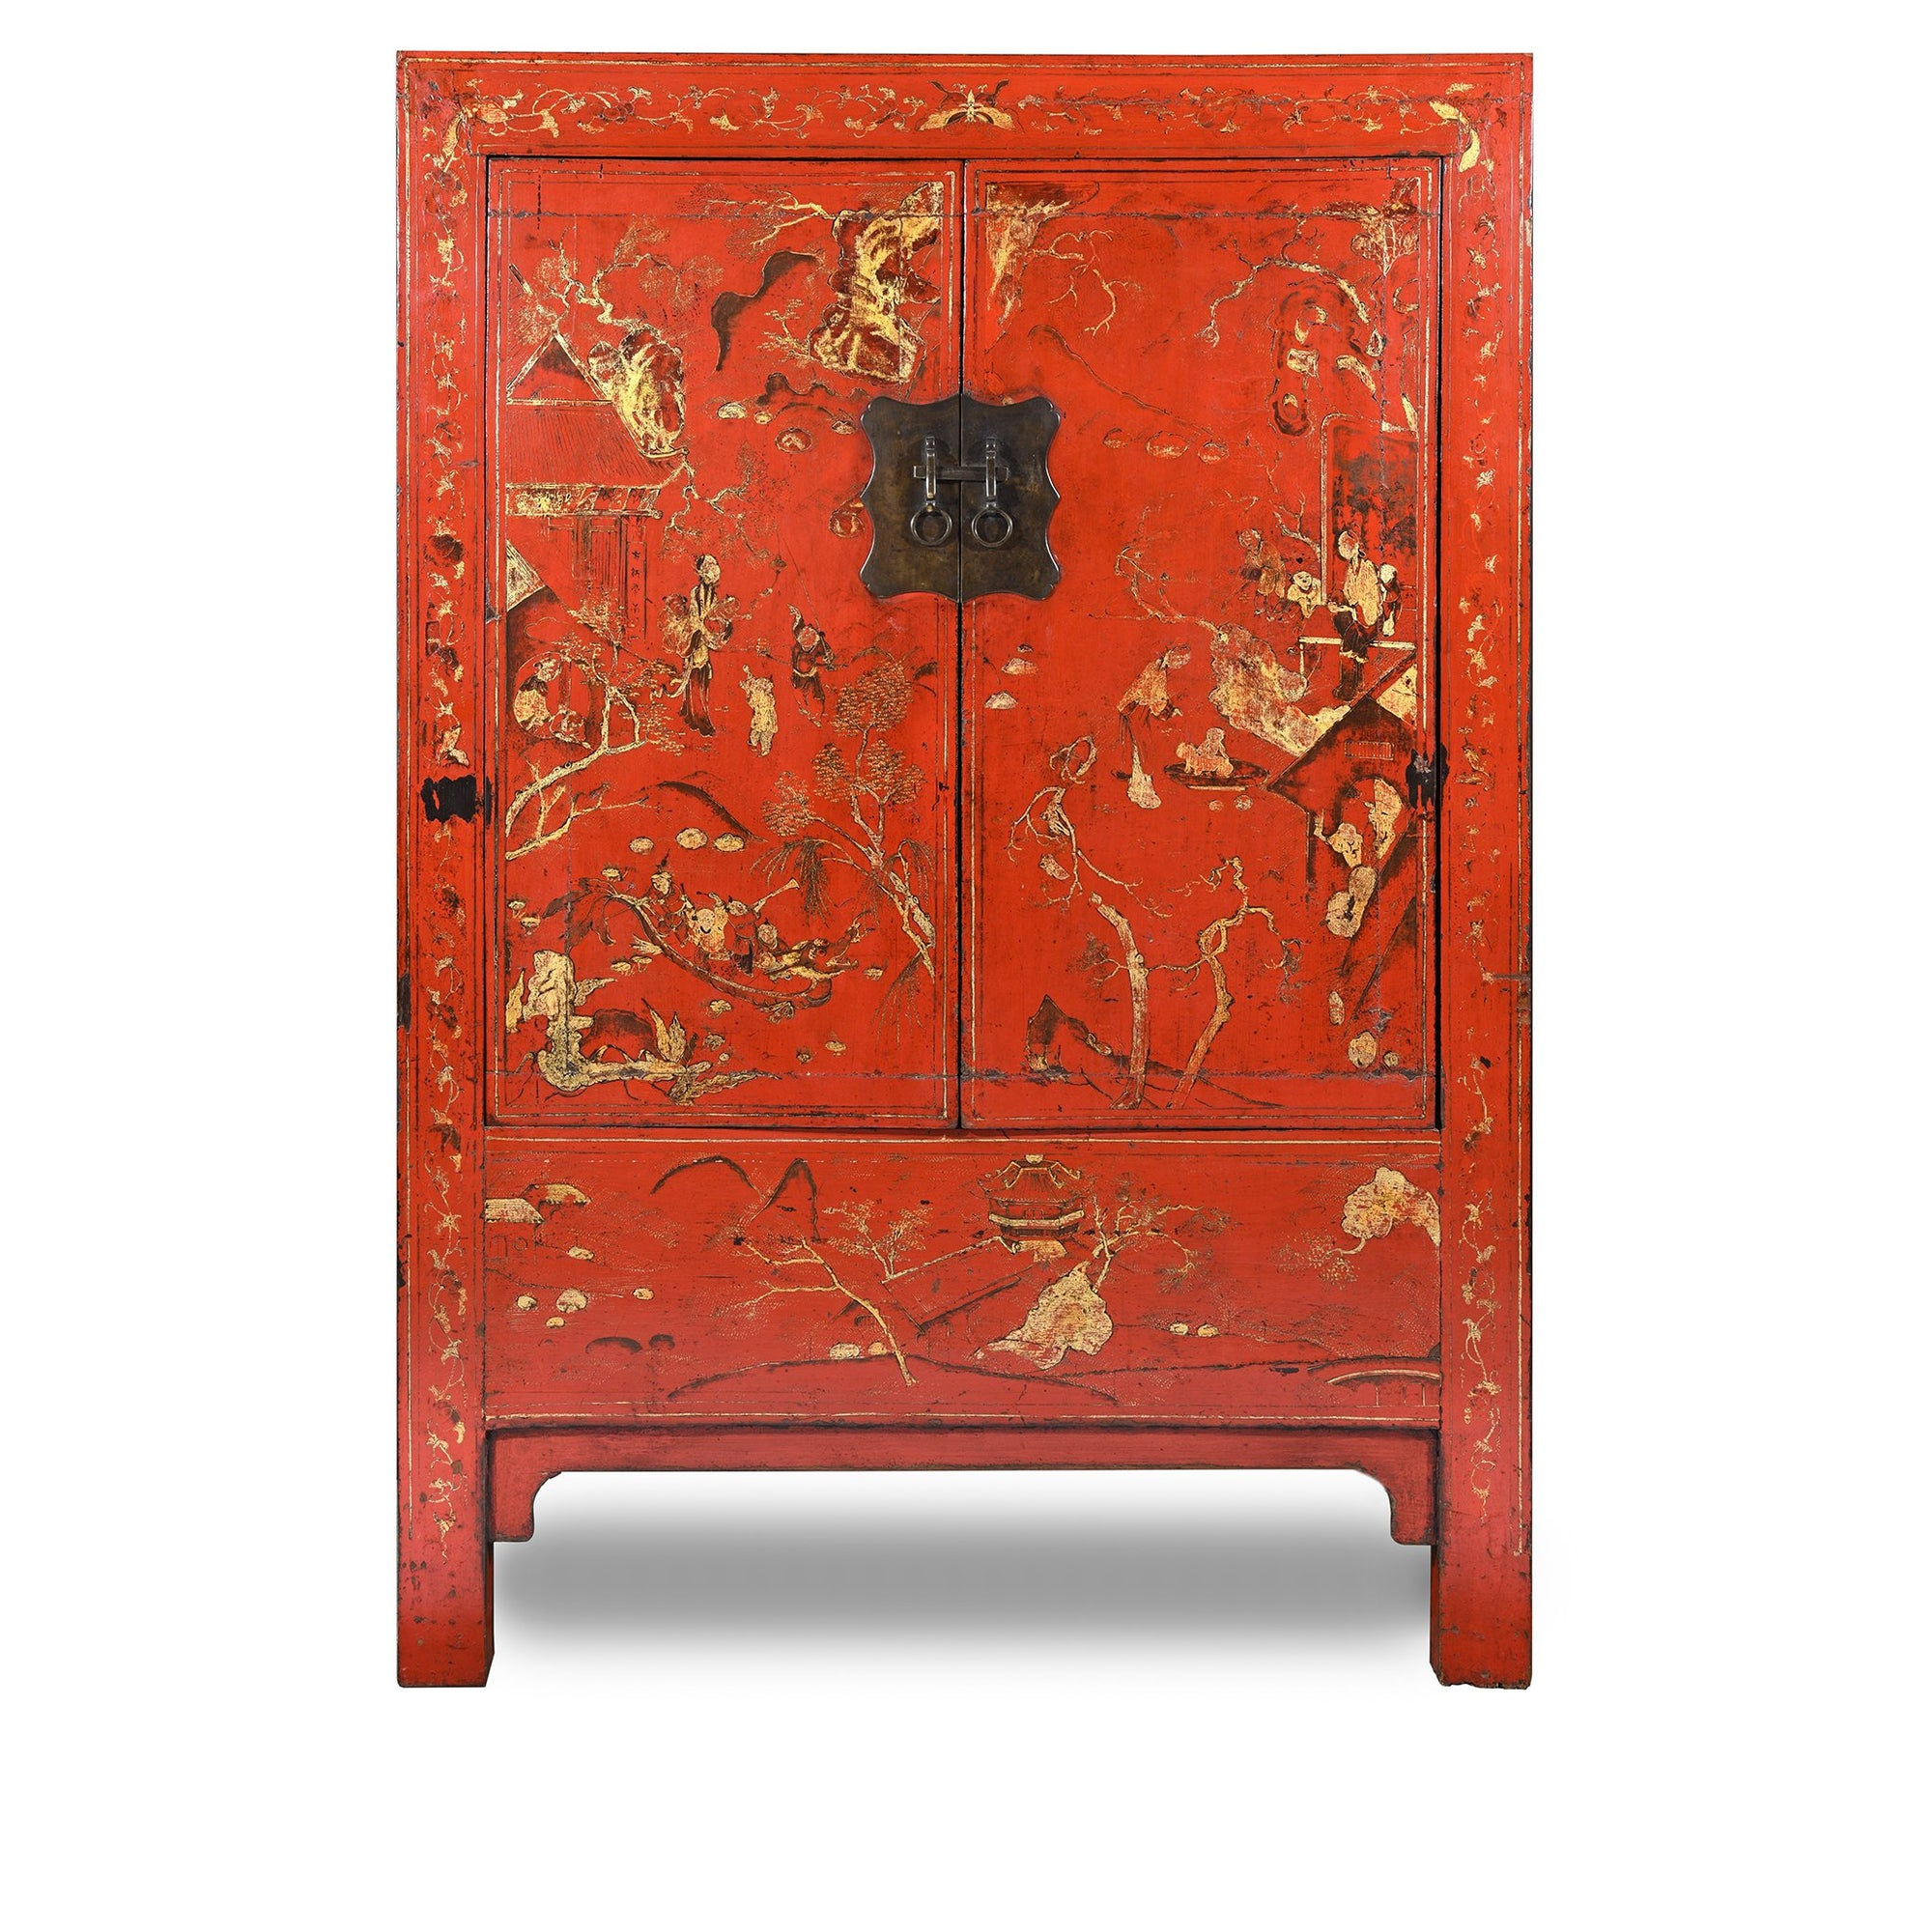 Antique Red Lacquer Wedding Cabinet from China - 19thC | Indigo Oriental Antiques